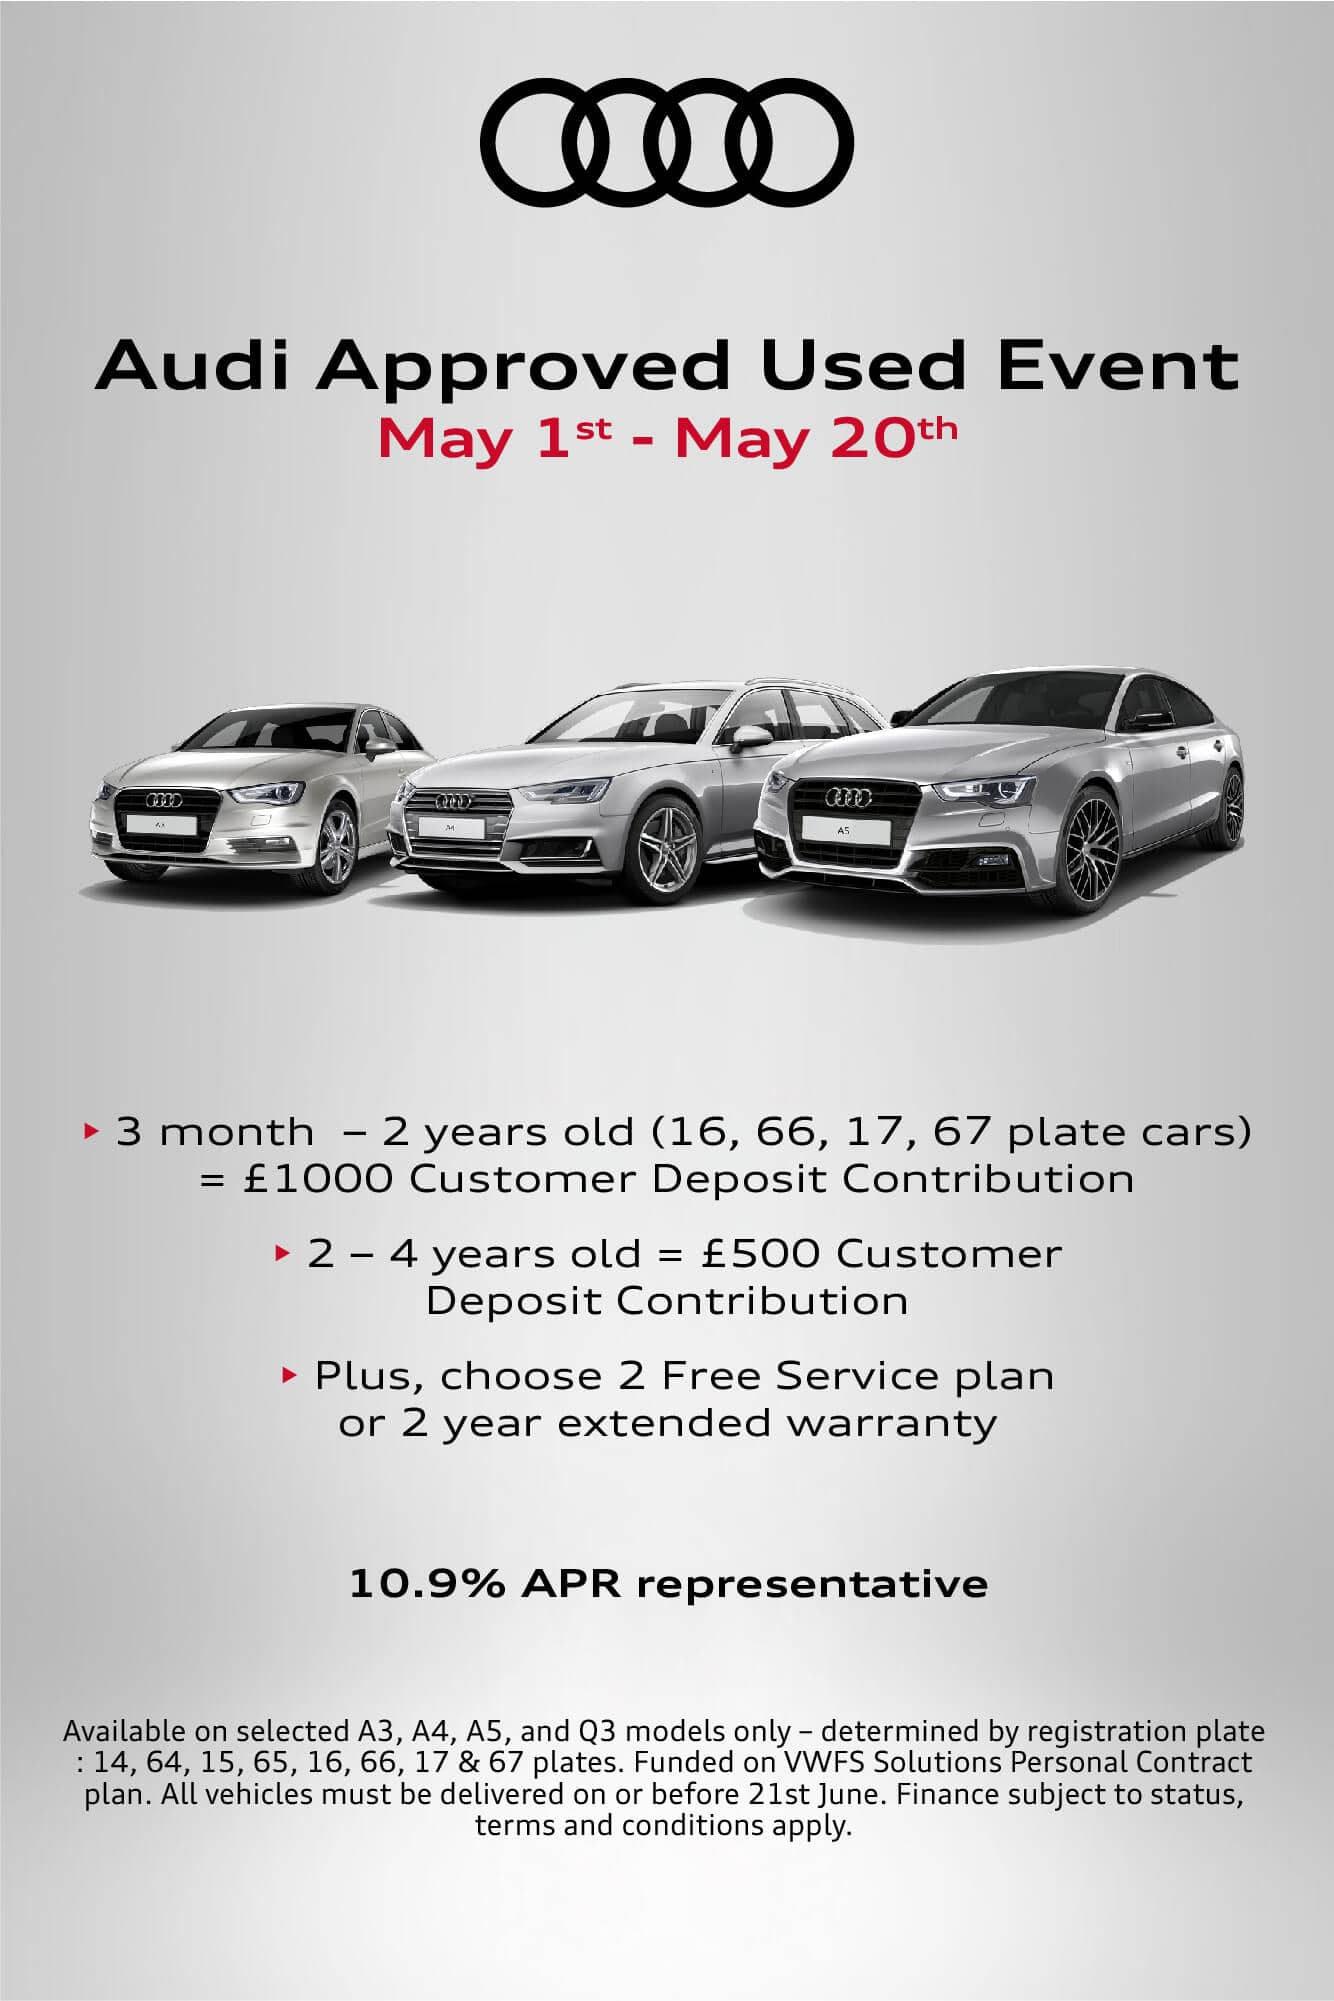 Audi Used Car Event BB